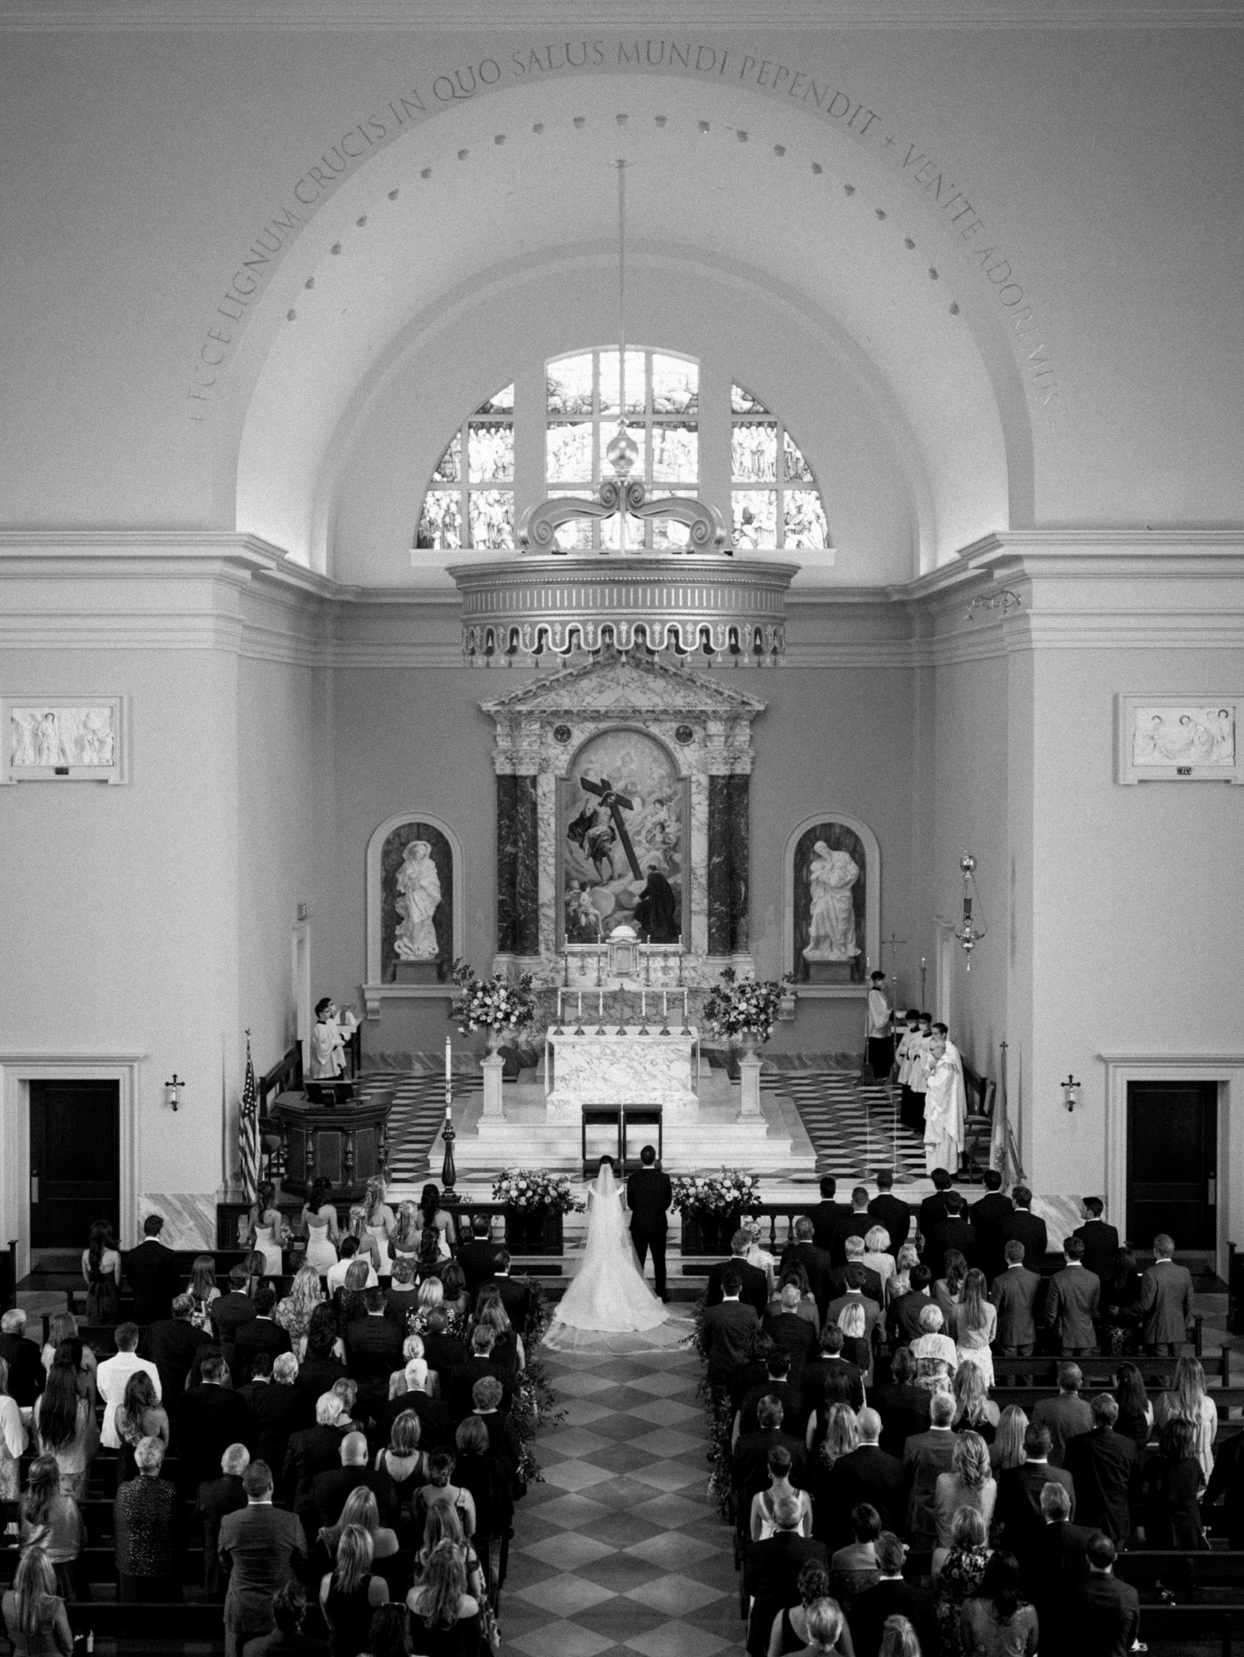 bride and groom surrounded by guests at church wedding ceremony